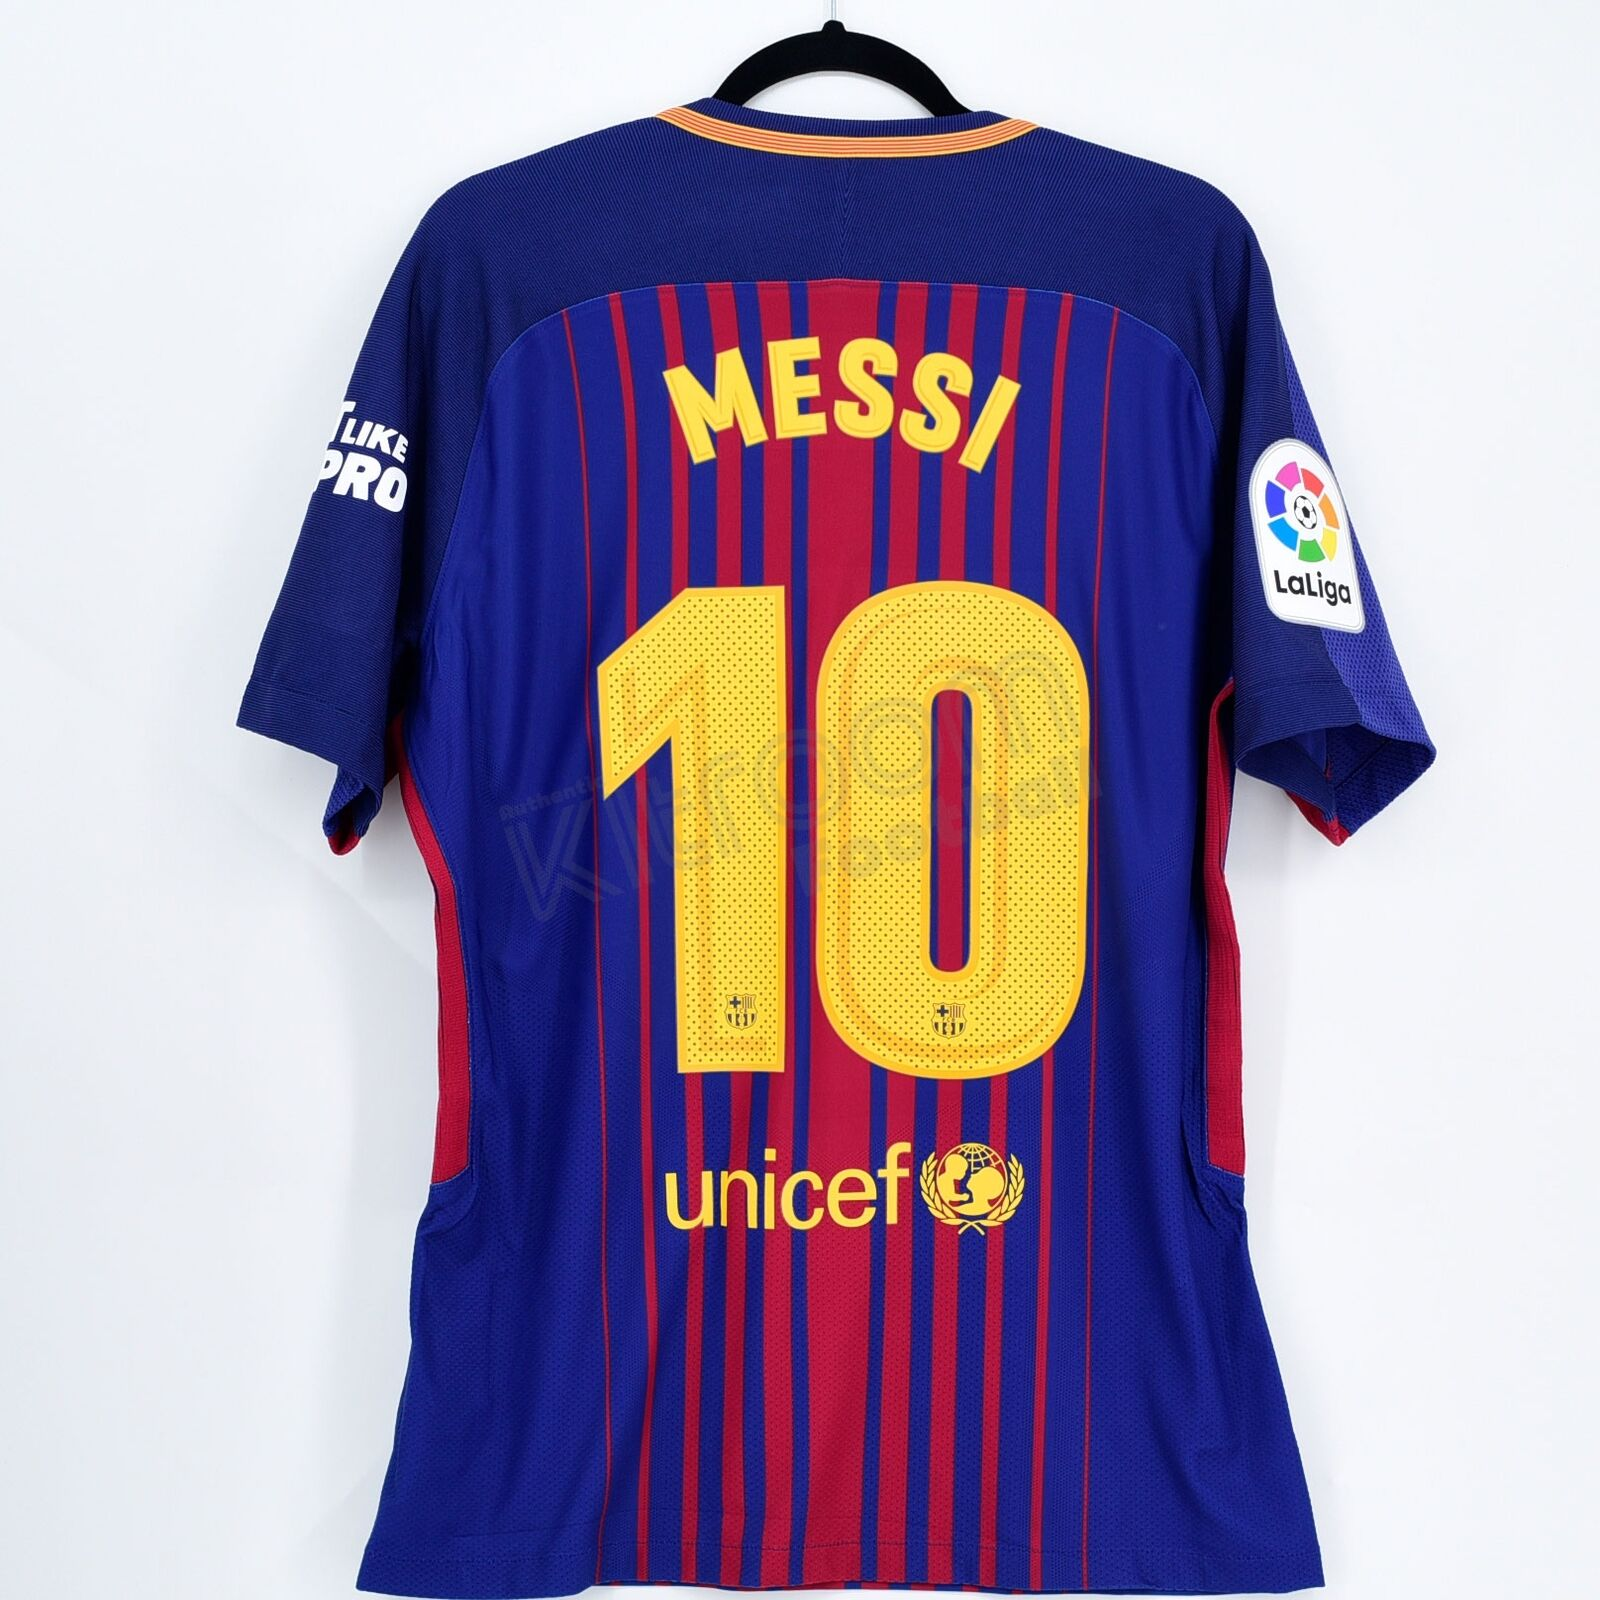 2017-18 Barcelona Jugarer Issue Home Shirt Messi  10 vs Real Madrid Eat Like a...